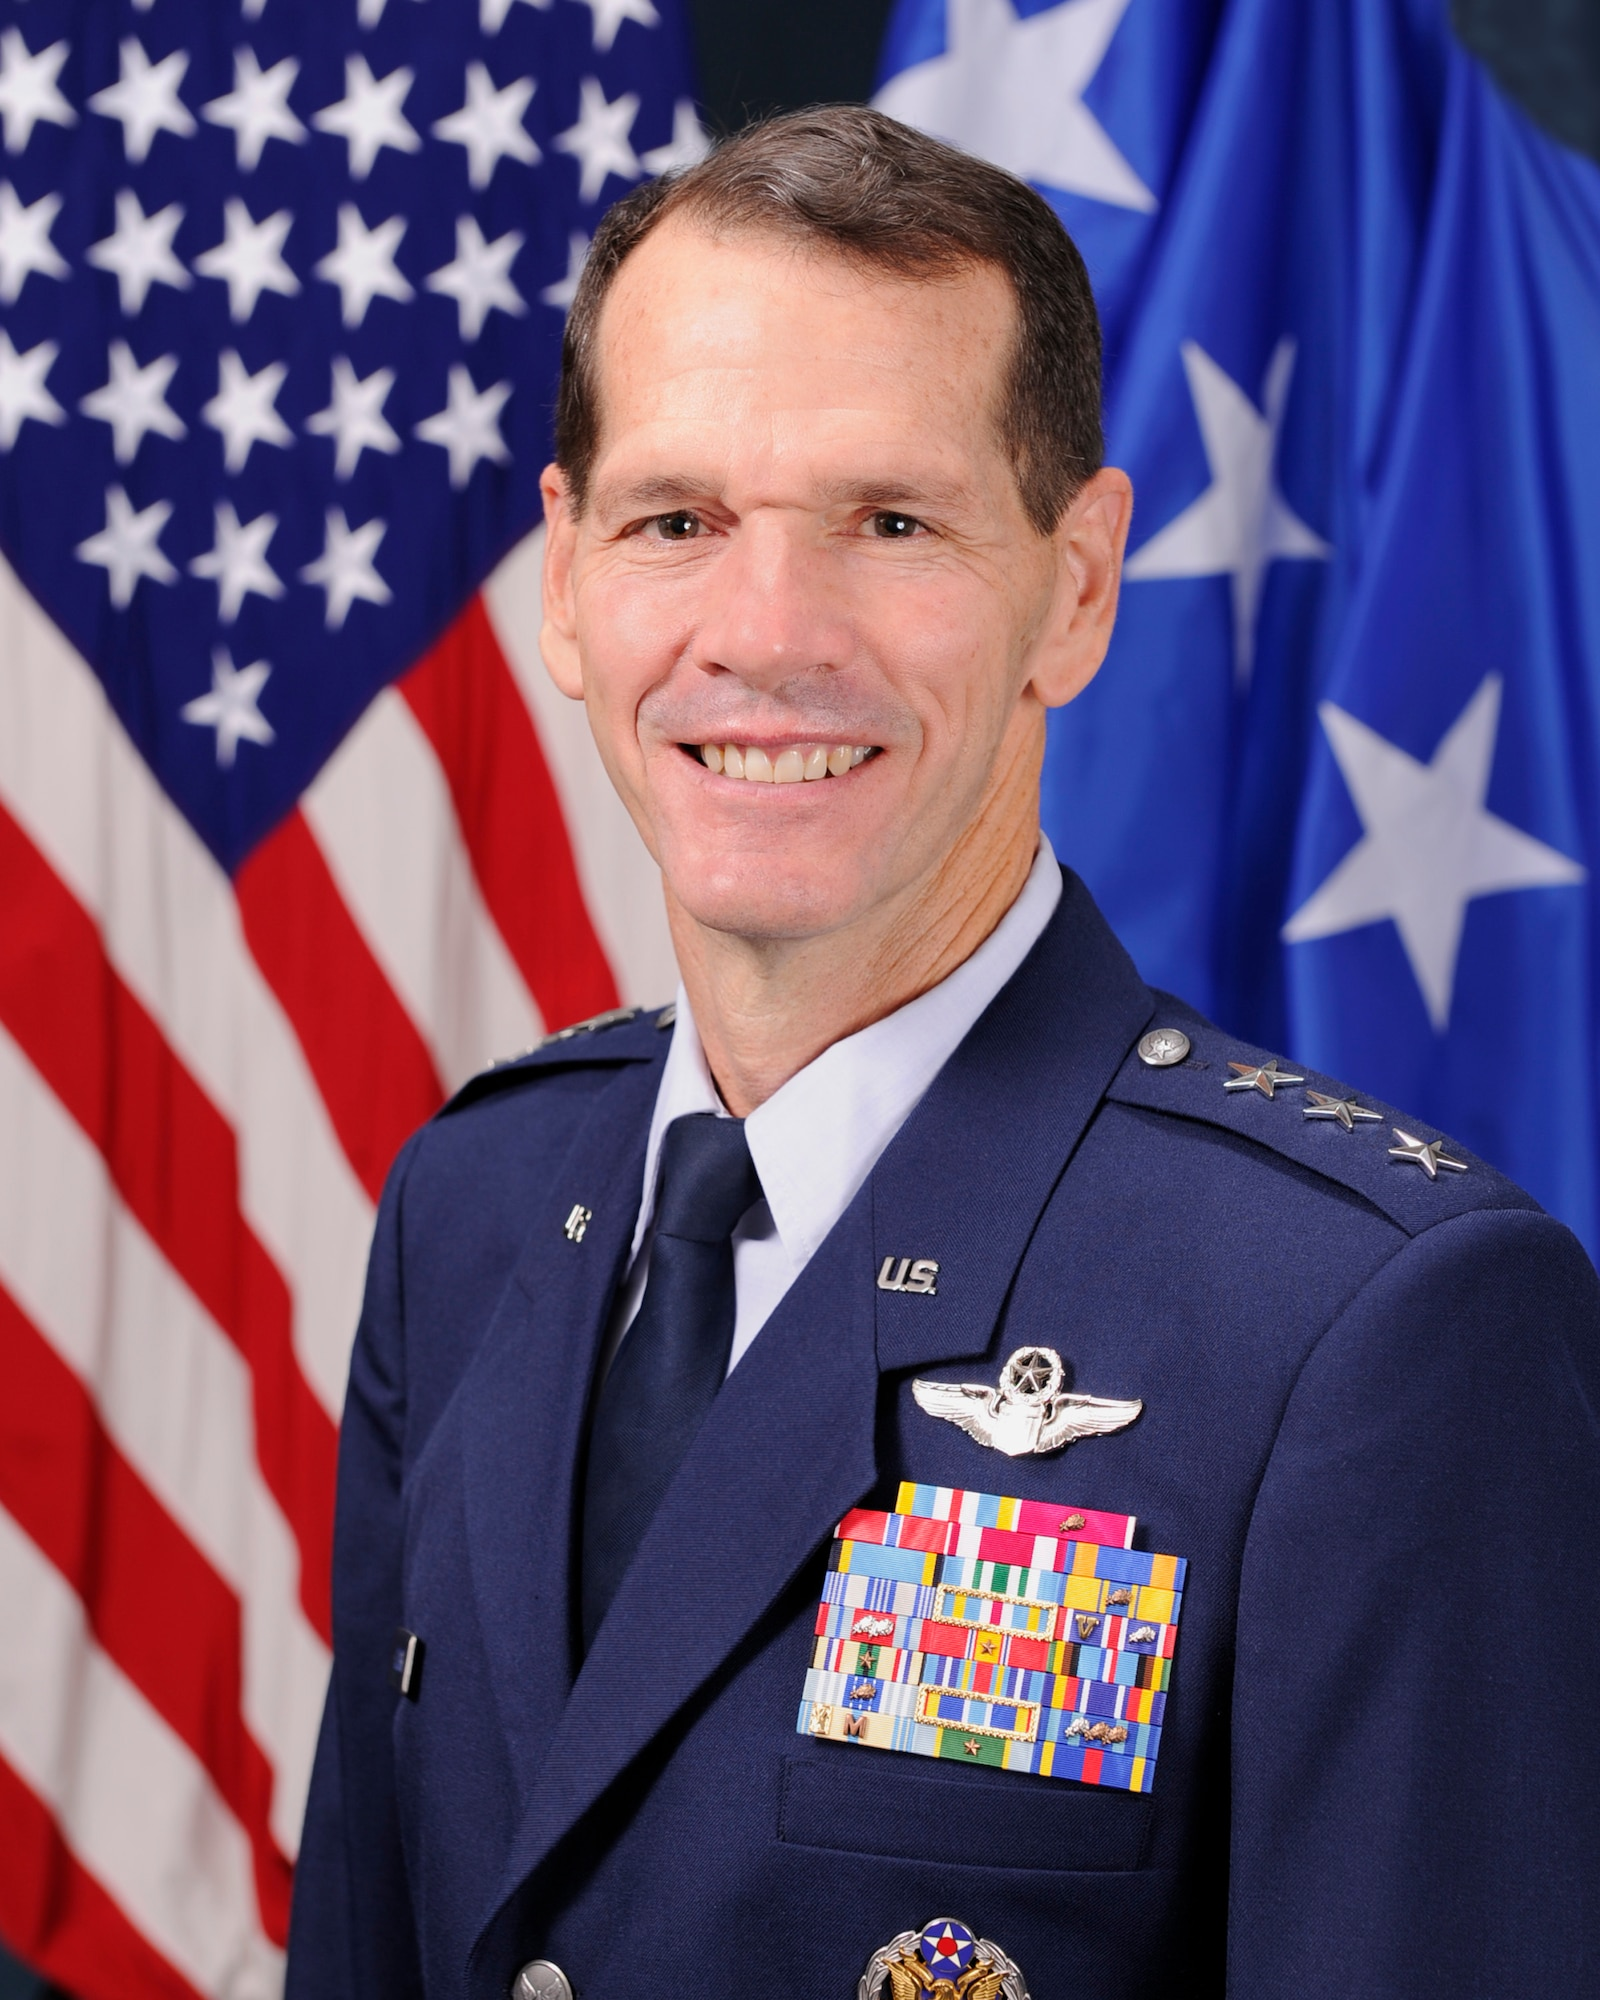 """LIEUTENANT GENERAL STANLEY E. CLARKE III    Formerly             Information > Biographies > LIEUTENANT GENERAL STANLEY E. CLARKE III           LIEUTENANT GENERAL STANLEY E. CLARKE III               Download Hi-Res             --------------------------------------------------------------------------------     Bio Tools      Printable bio      --------------------------------------------------------------------------------   Lt. Gen. Stanley E. Clarke III, commander of the Continental U.S. North American Aerospace Defense Command Region-1st Air Force, has been nominated by President Obama to be the next director of the Air National Guard.  If confirmed by the Senate, Clarke will replace Lt. Gen. Harry """"Bud"""" Wyatt III., who is retiring in January 2013."""